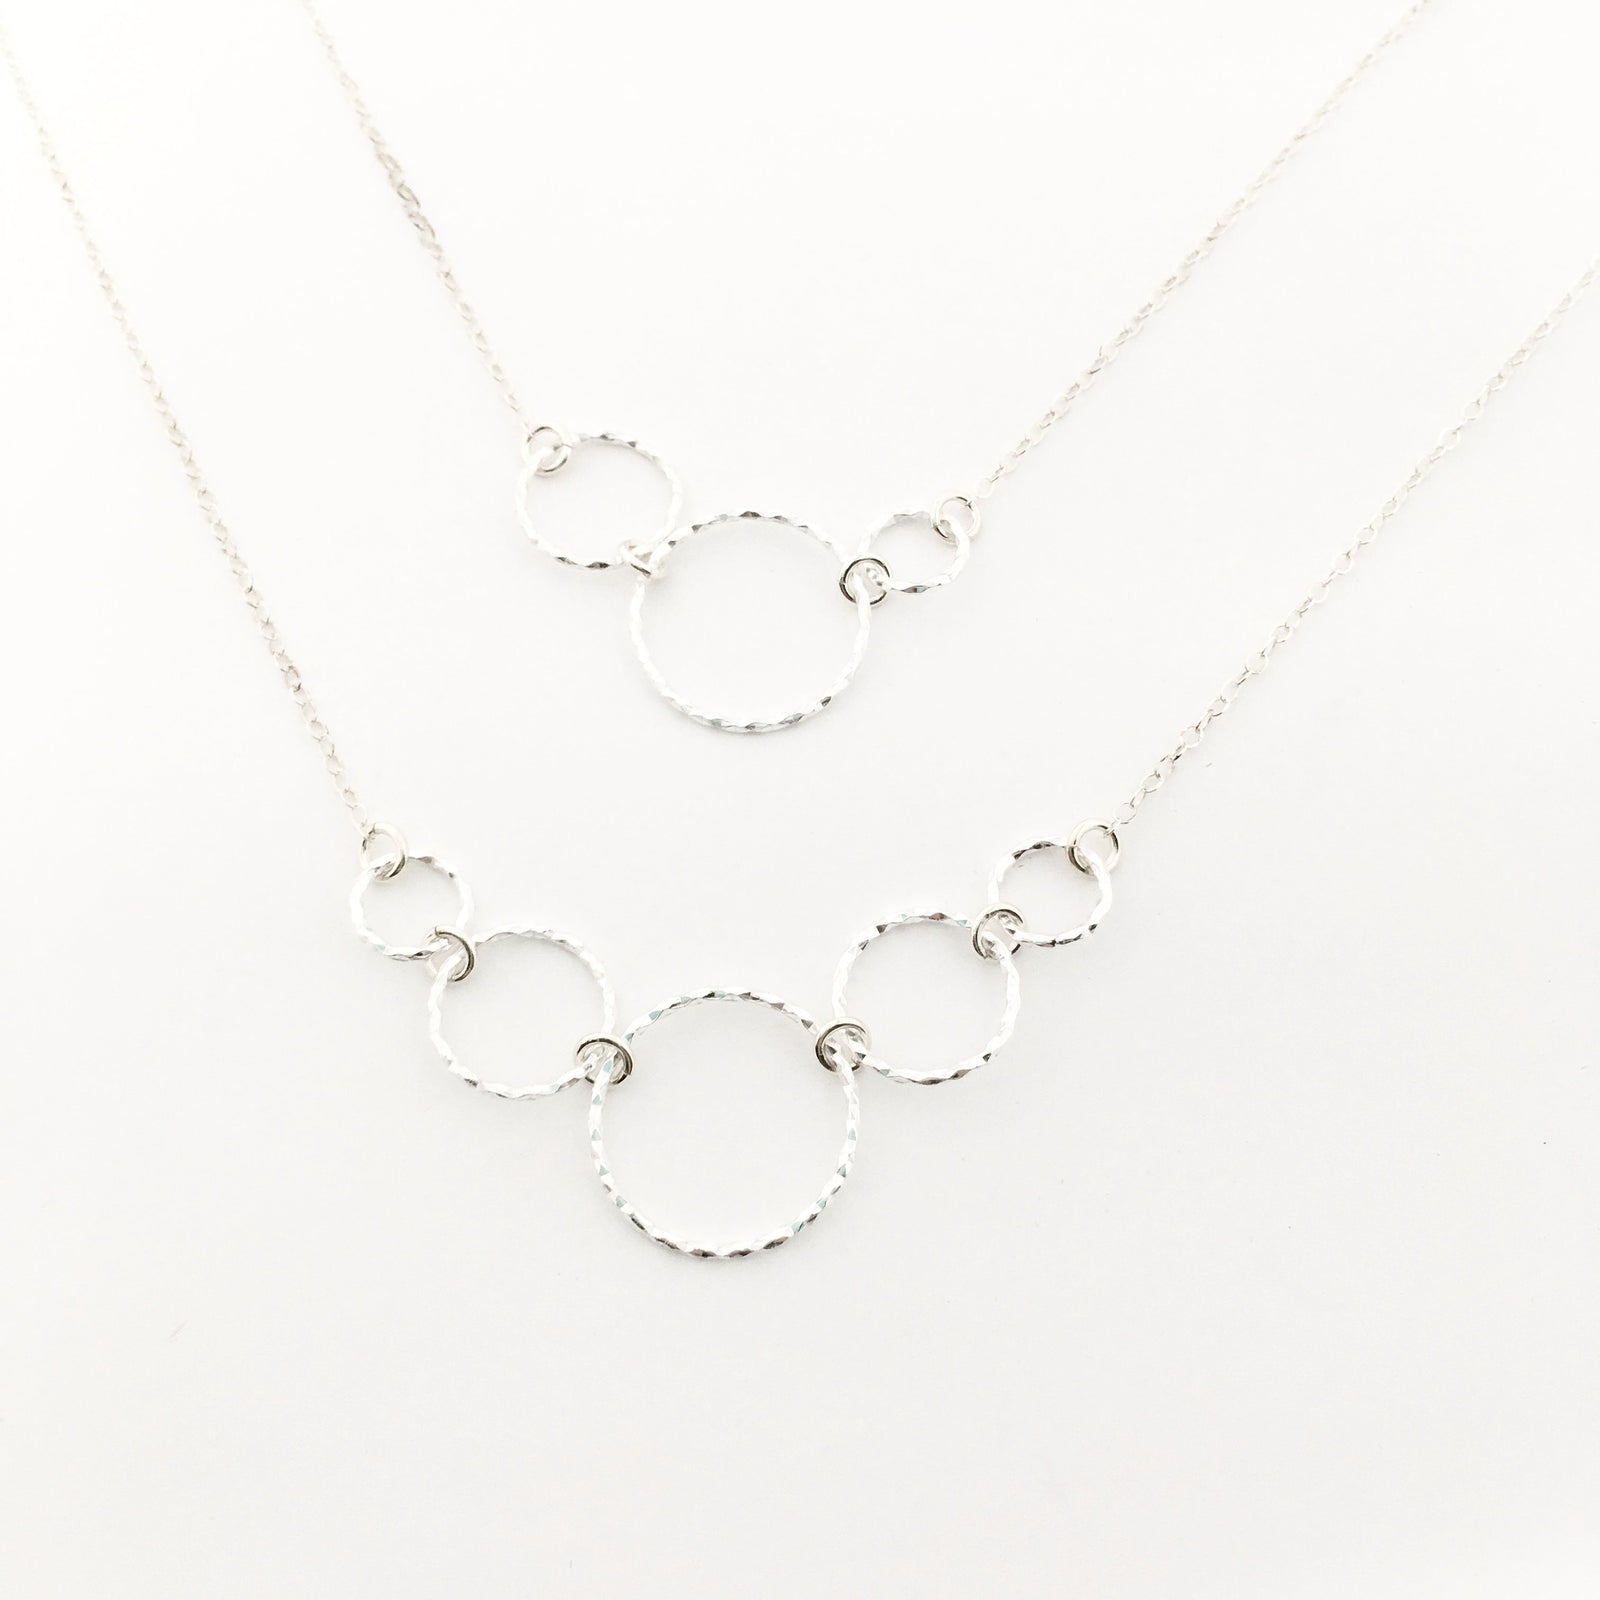 STERLING SILVER MULTI HOOP NECKLACES | SIZE OPTIONS